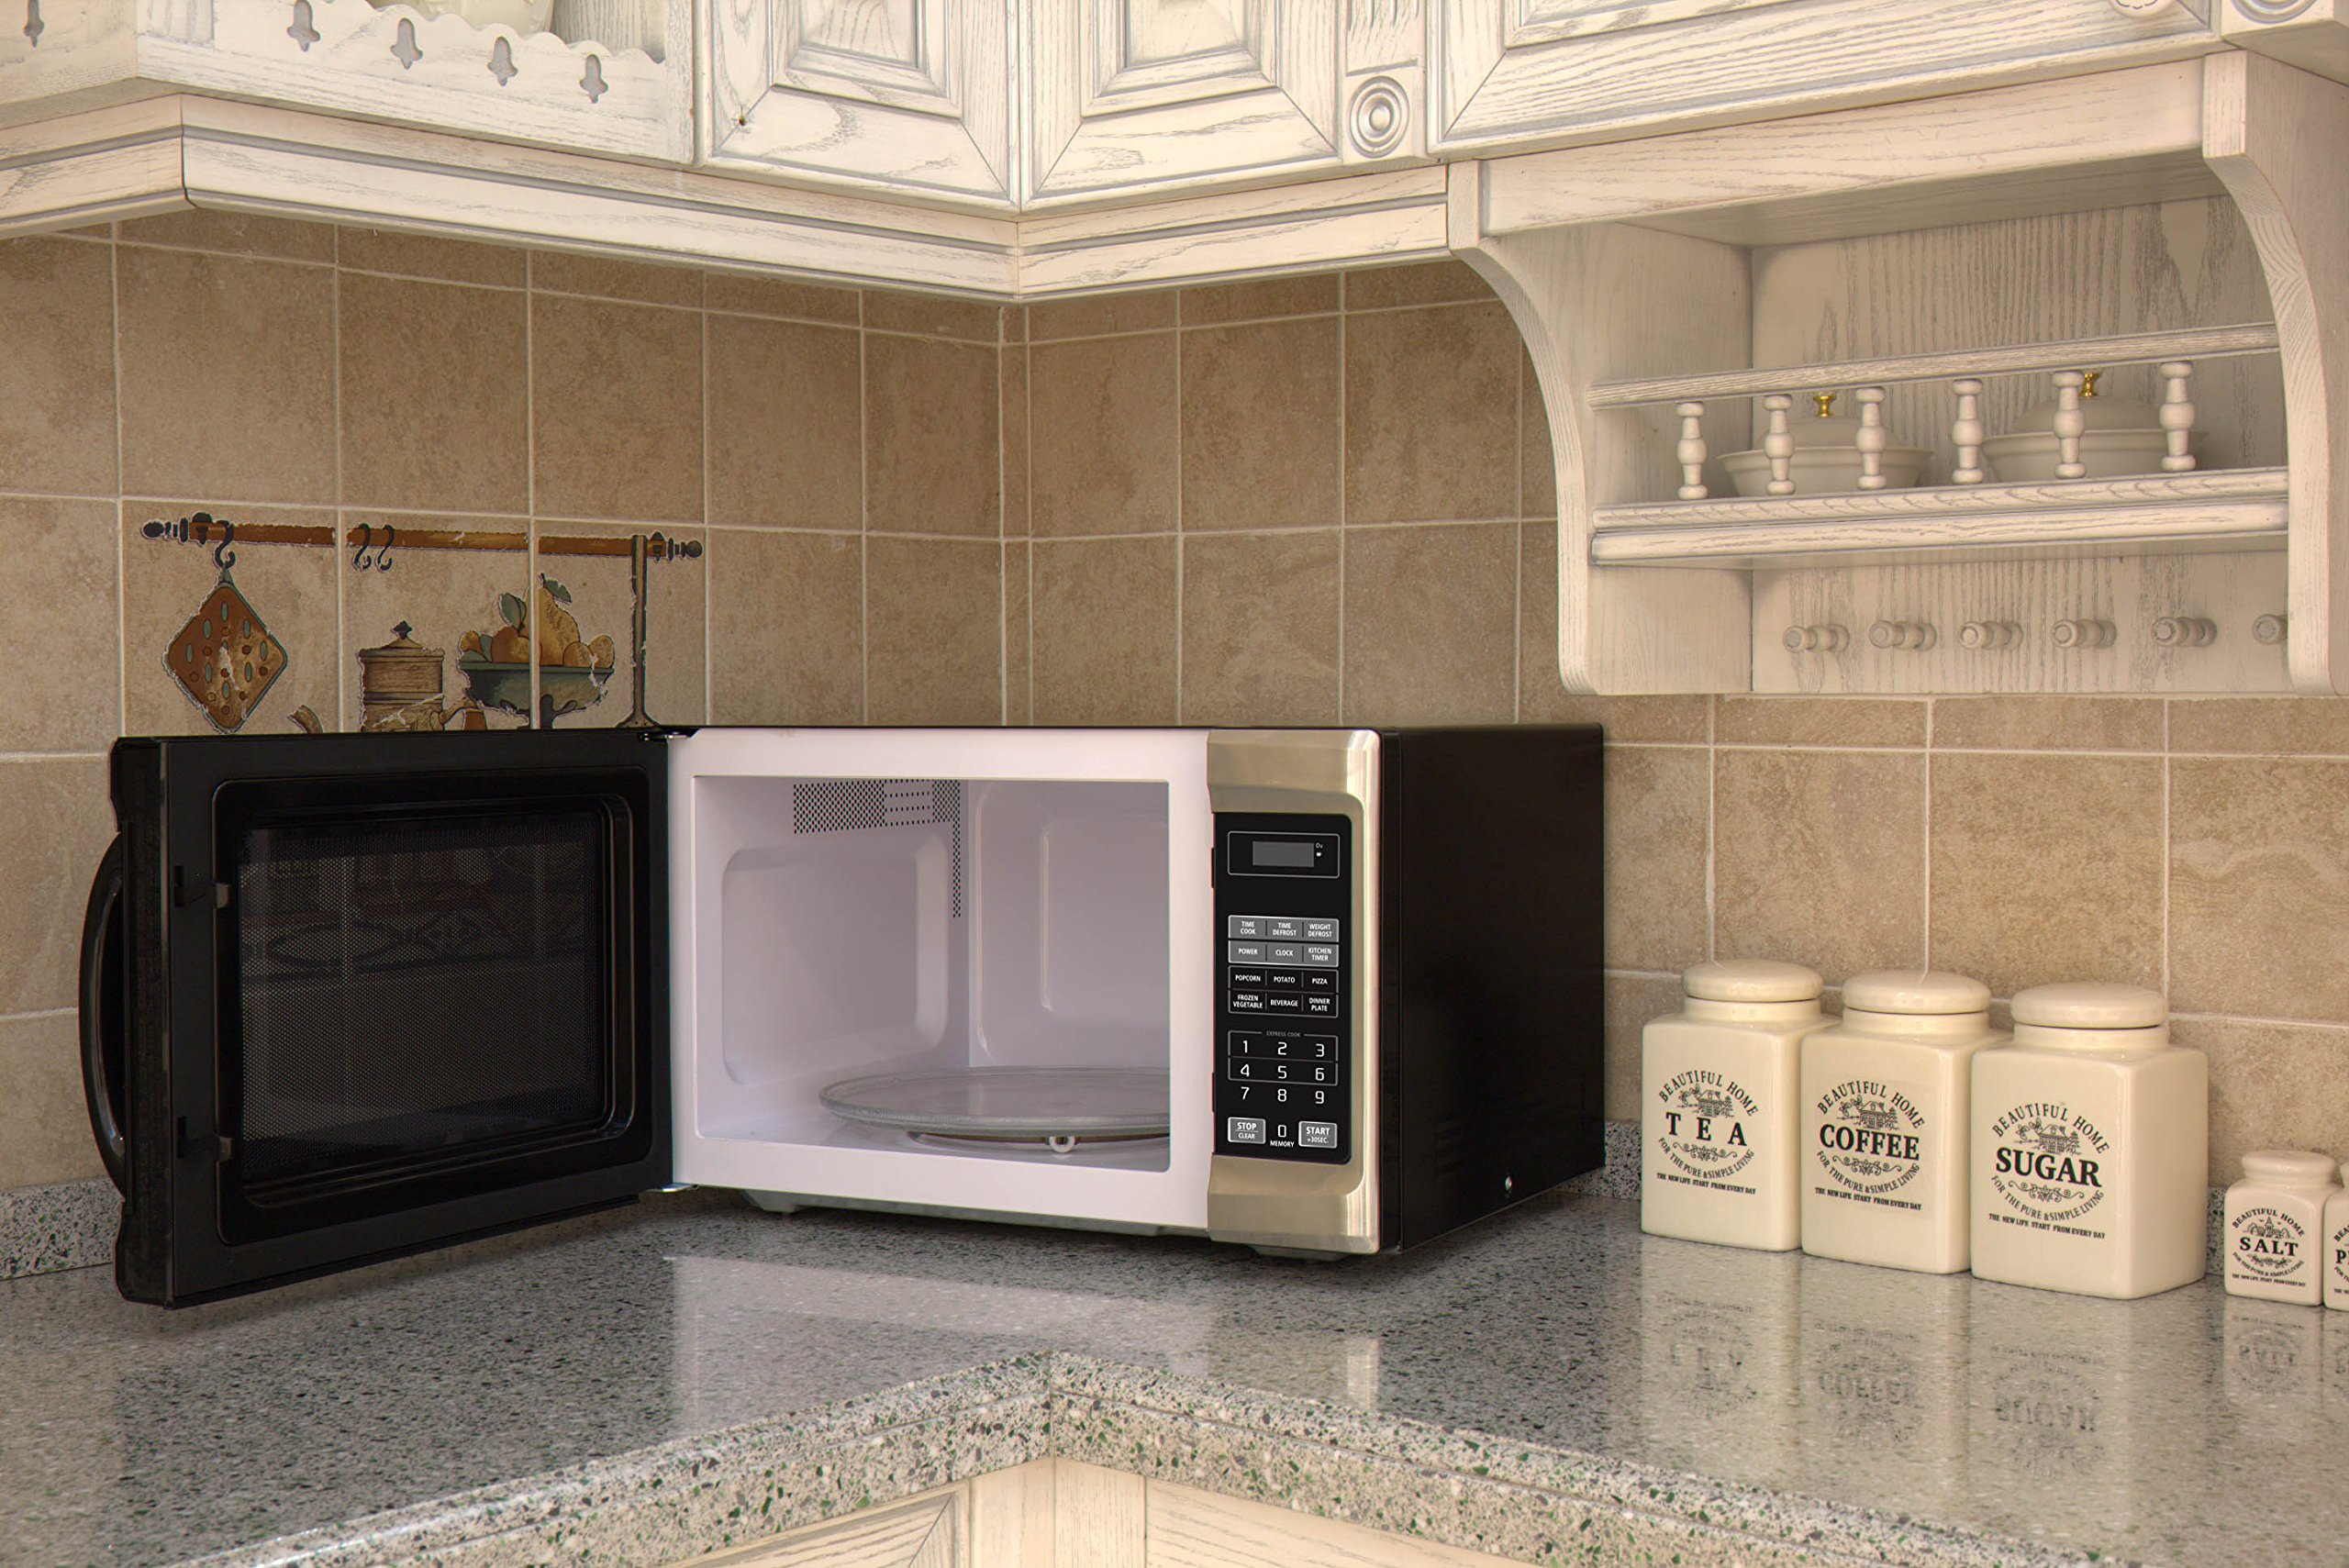 Emerson 1.3 CU. FT. 1000 Watt, Touch Control, Stainless Steel Front, Black Cabinet Microwave Oven, MW1338SB by Emerson Radio